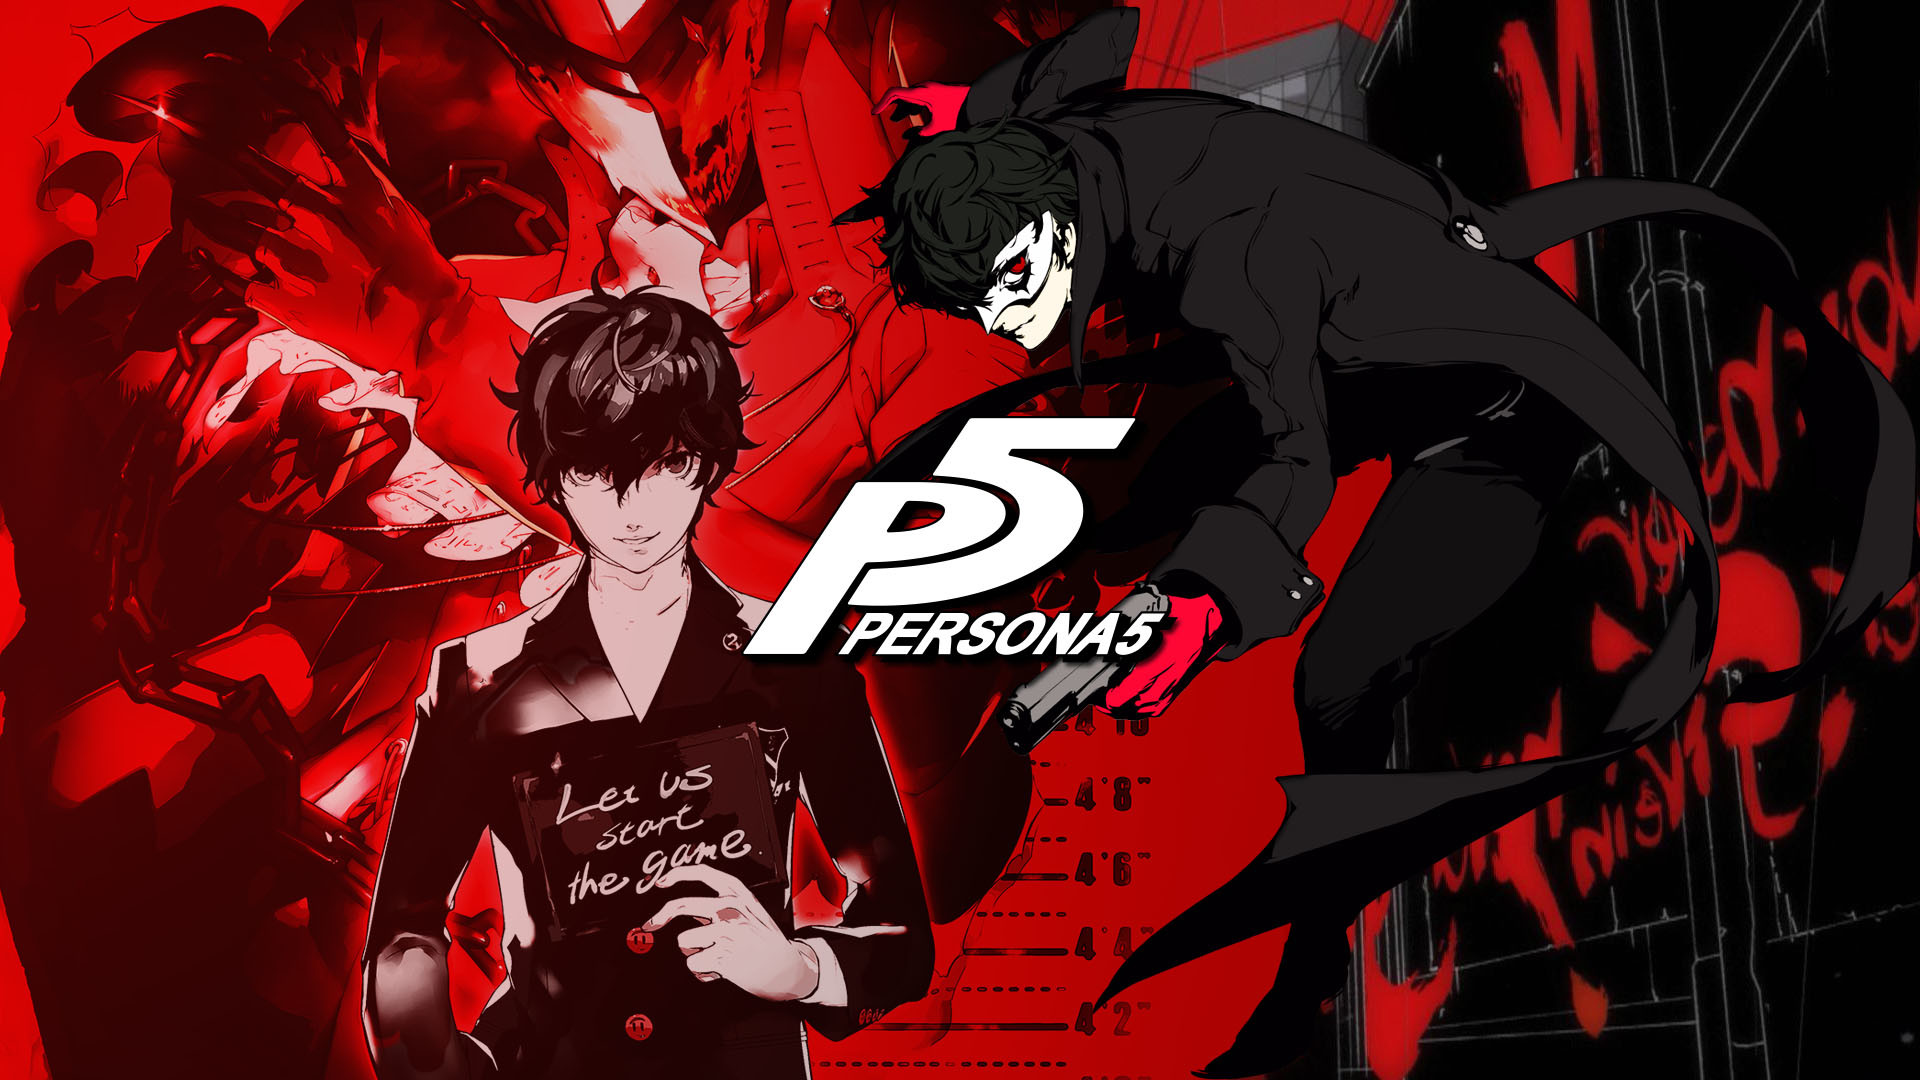 4k Anime Wallpapers Background Persona 5 Wallpaper 1440p